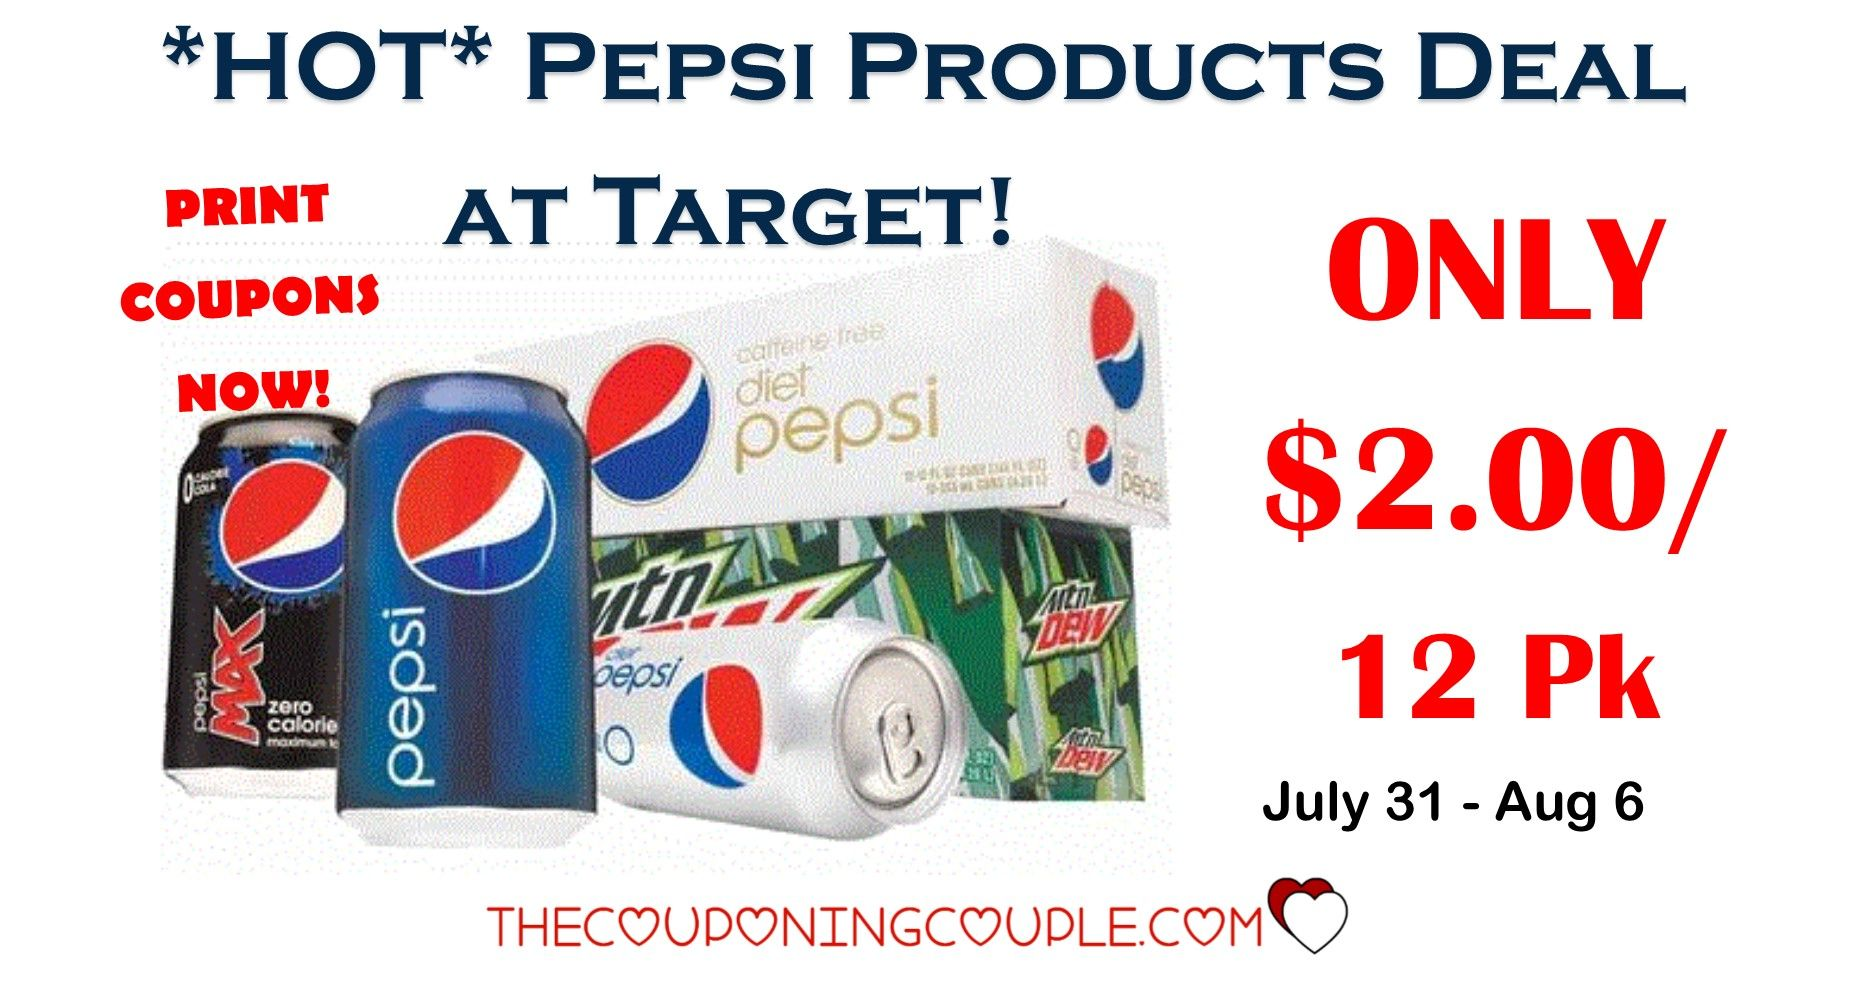 Hot Pepsi Products 12 Packs Cans Or 6 Pack Bottles 2 13 Target Pepsi Gift Card Deals Grocery Coupons